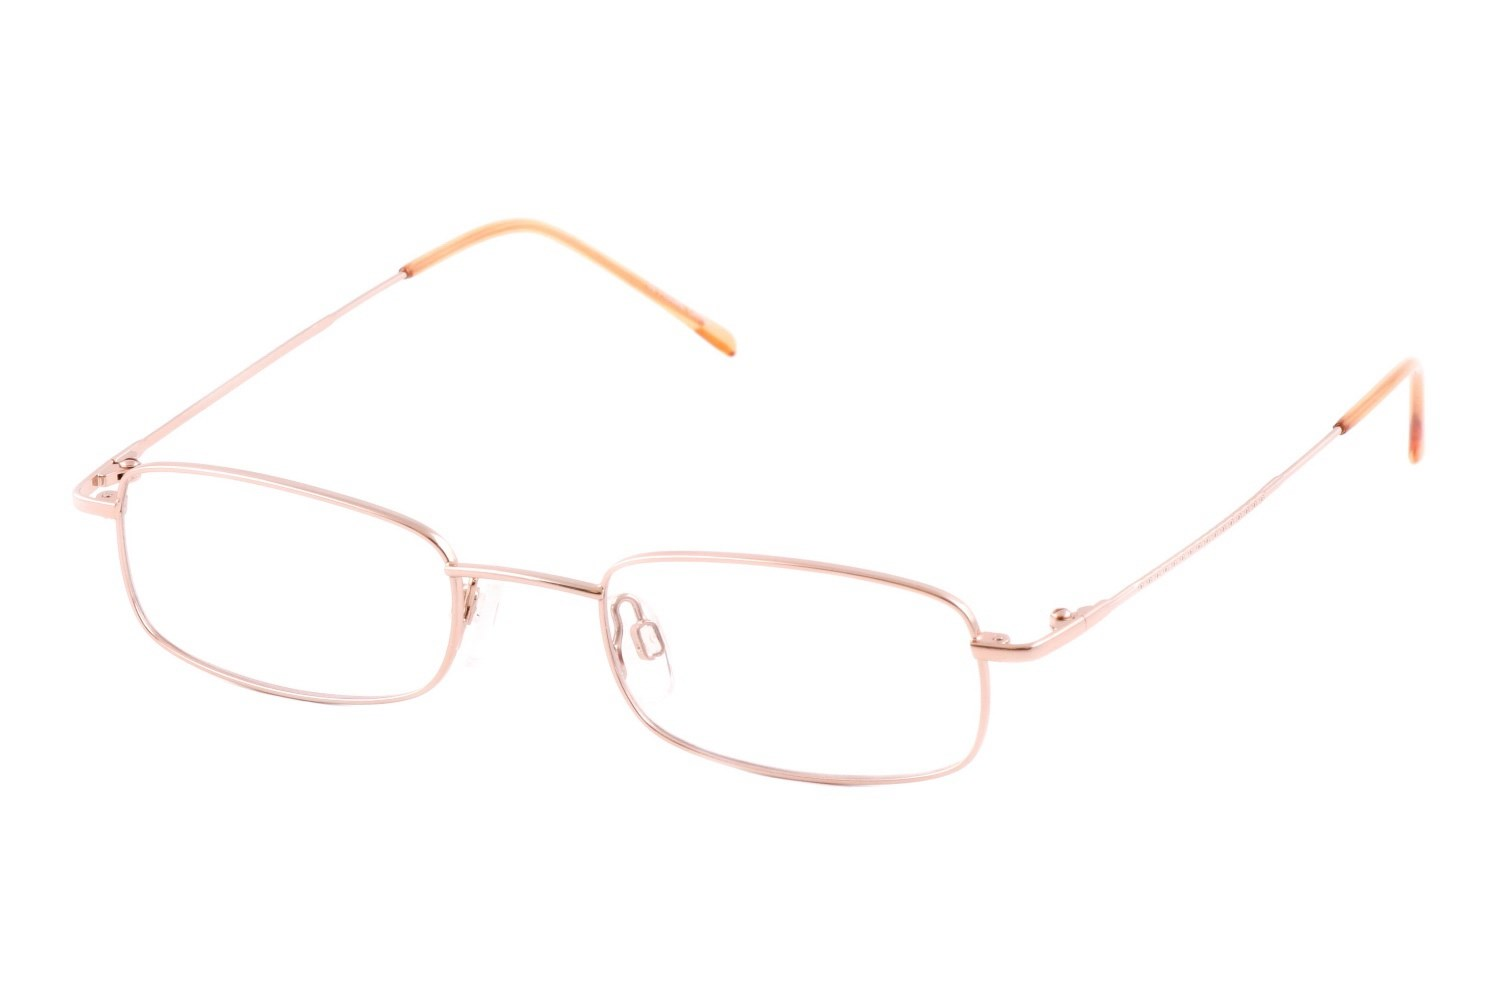 Artistic Values A 424 Prescription Eyeglasses Frames